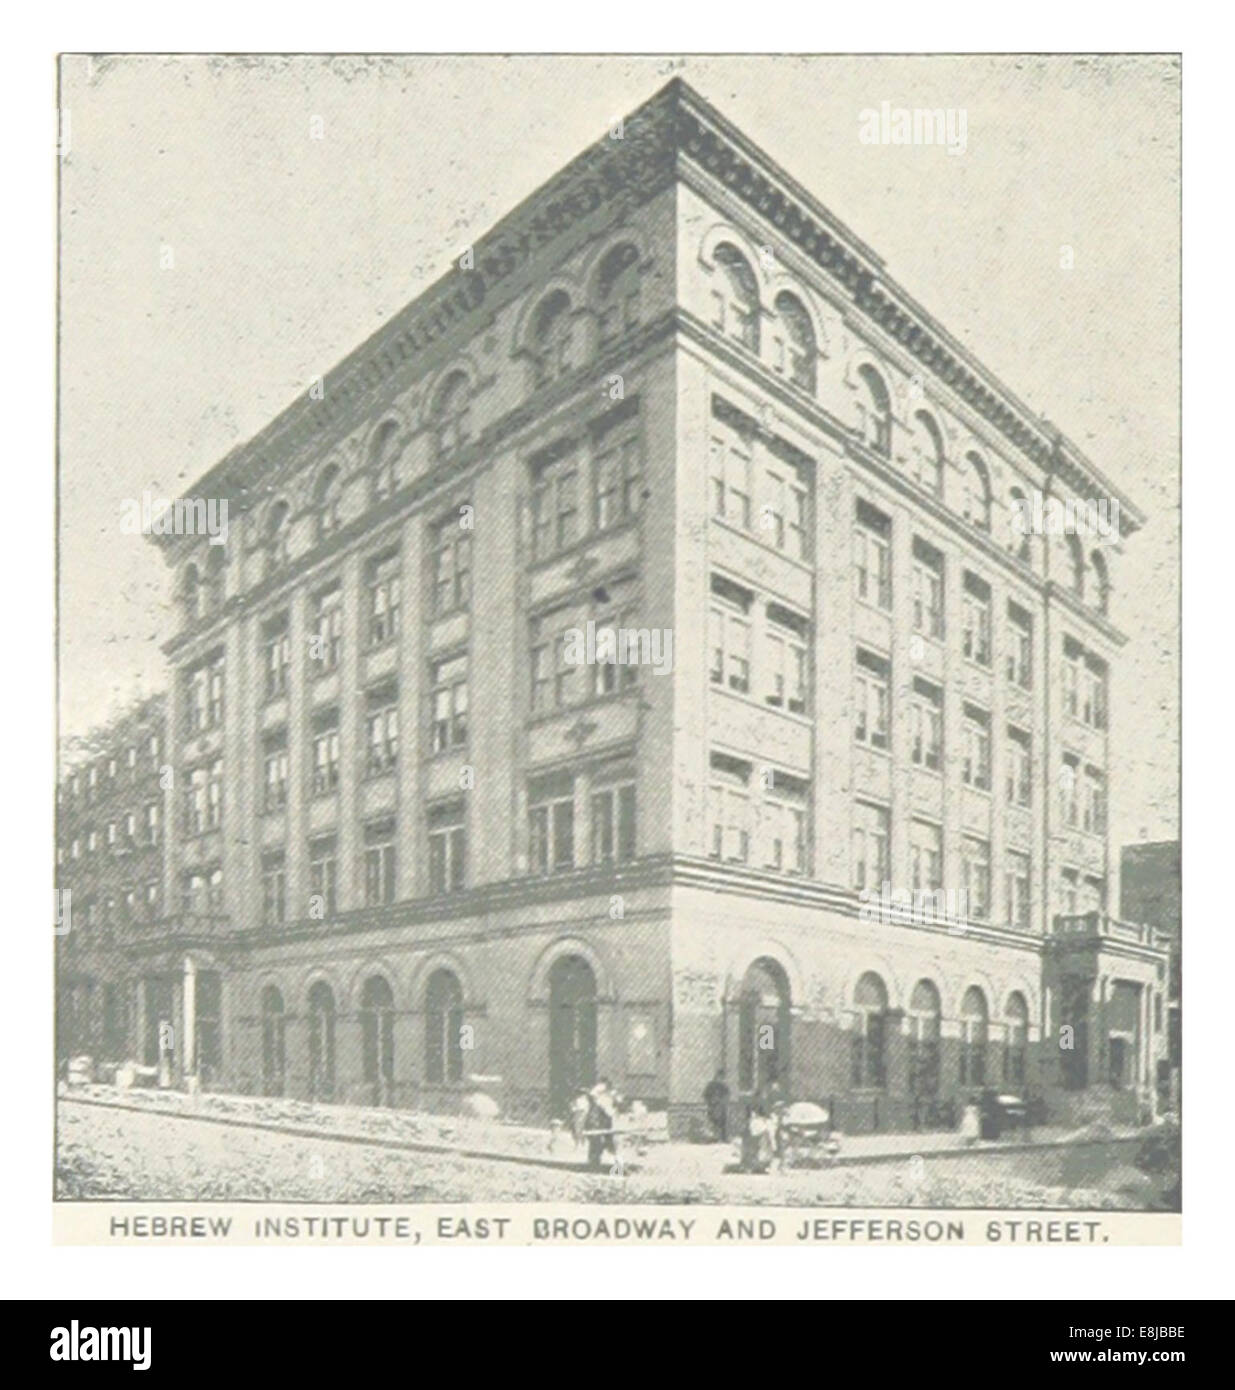 (King1893NYC) pg424 HEBREW INSTITUTE, EAST BROADWAY AND JEFFERSON STREET - Stock Image